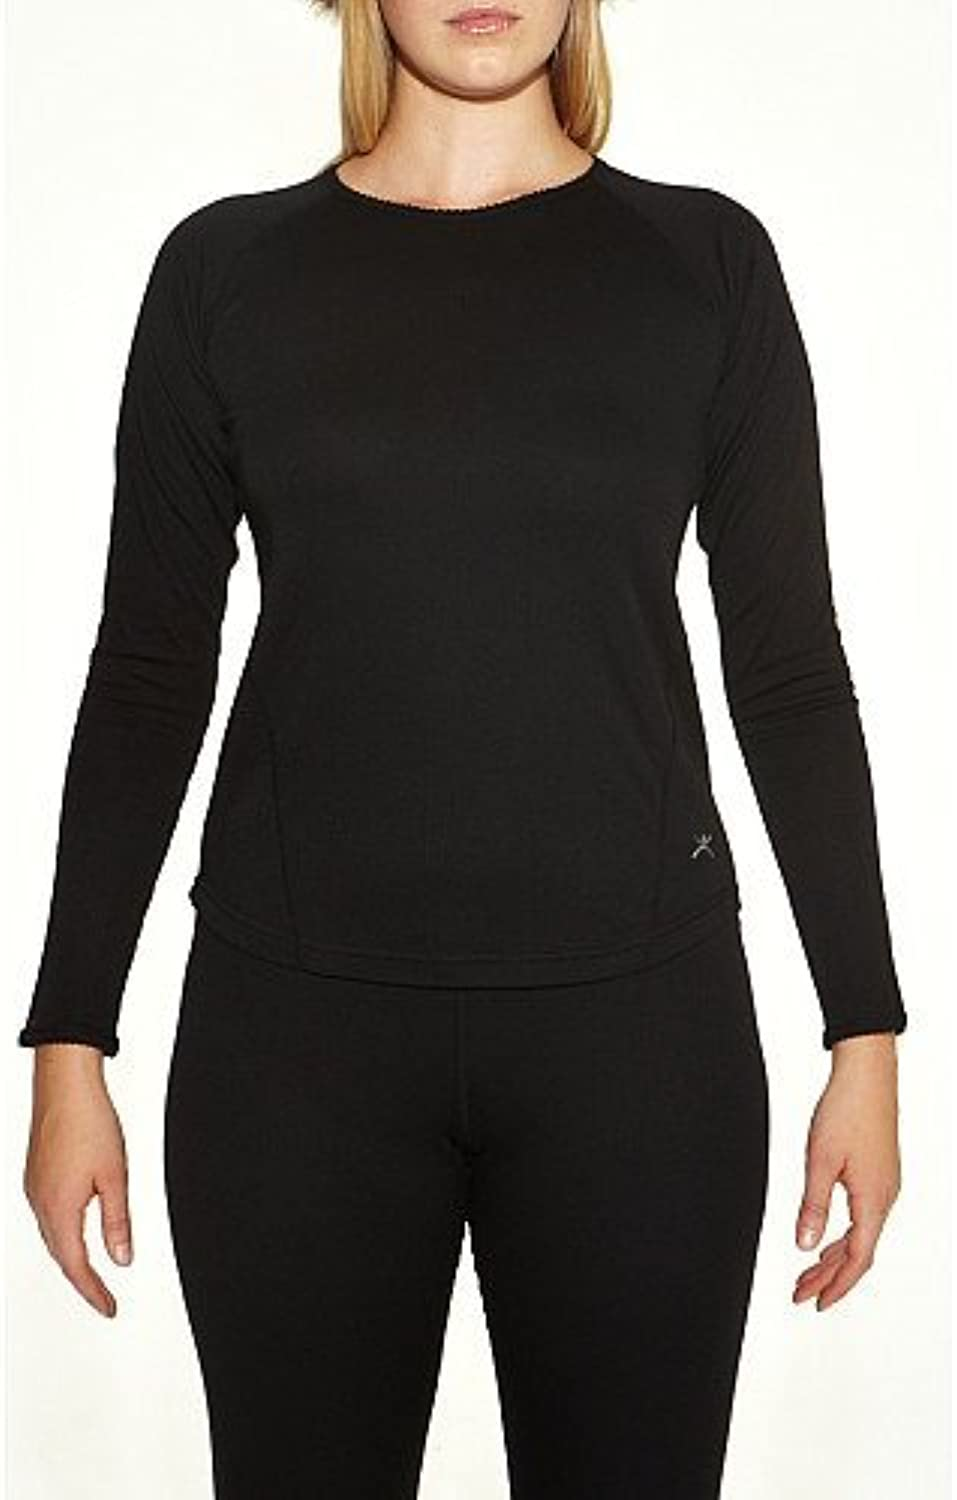 Terramar 2Layer Authentic Thermal MidWeight Long Sleeve Crew